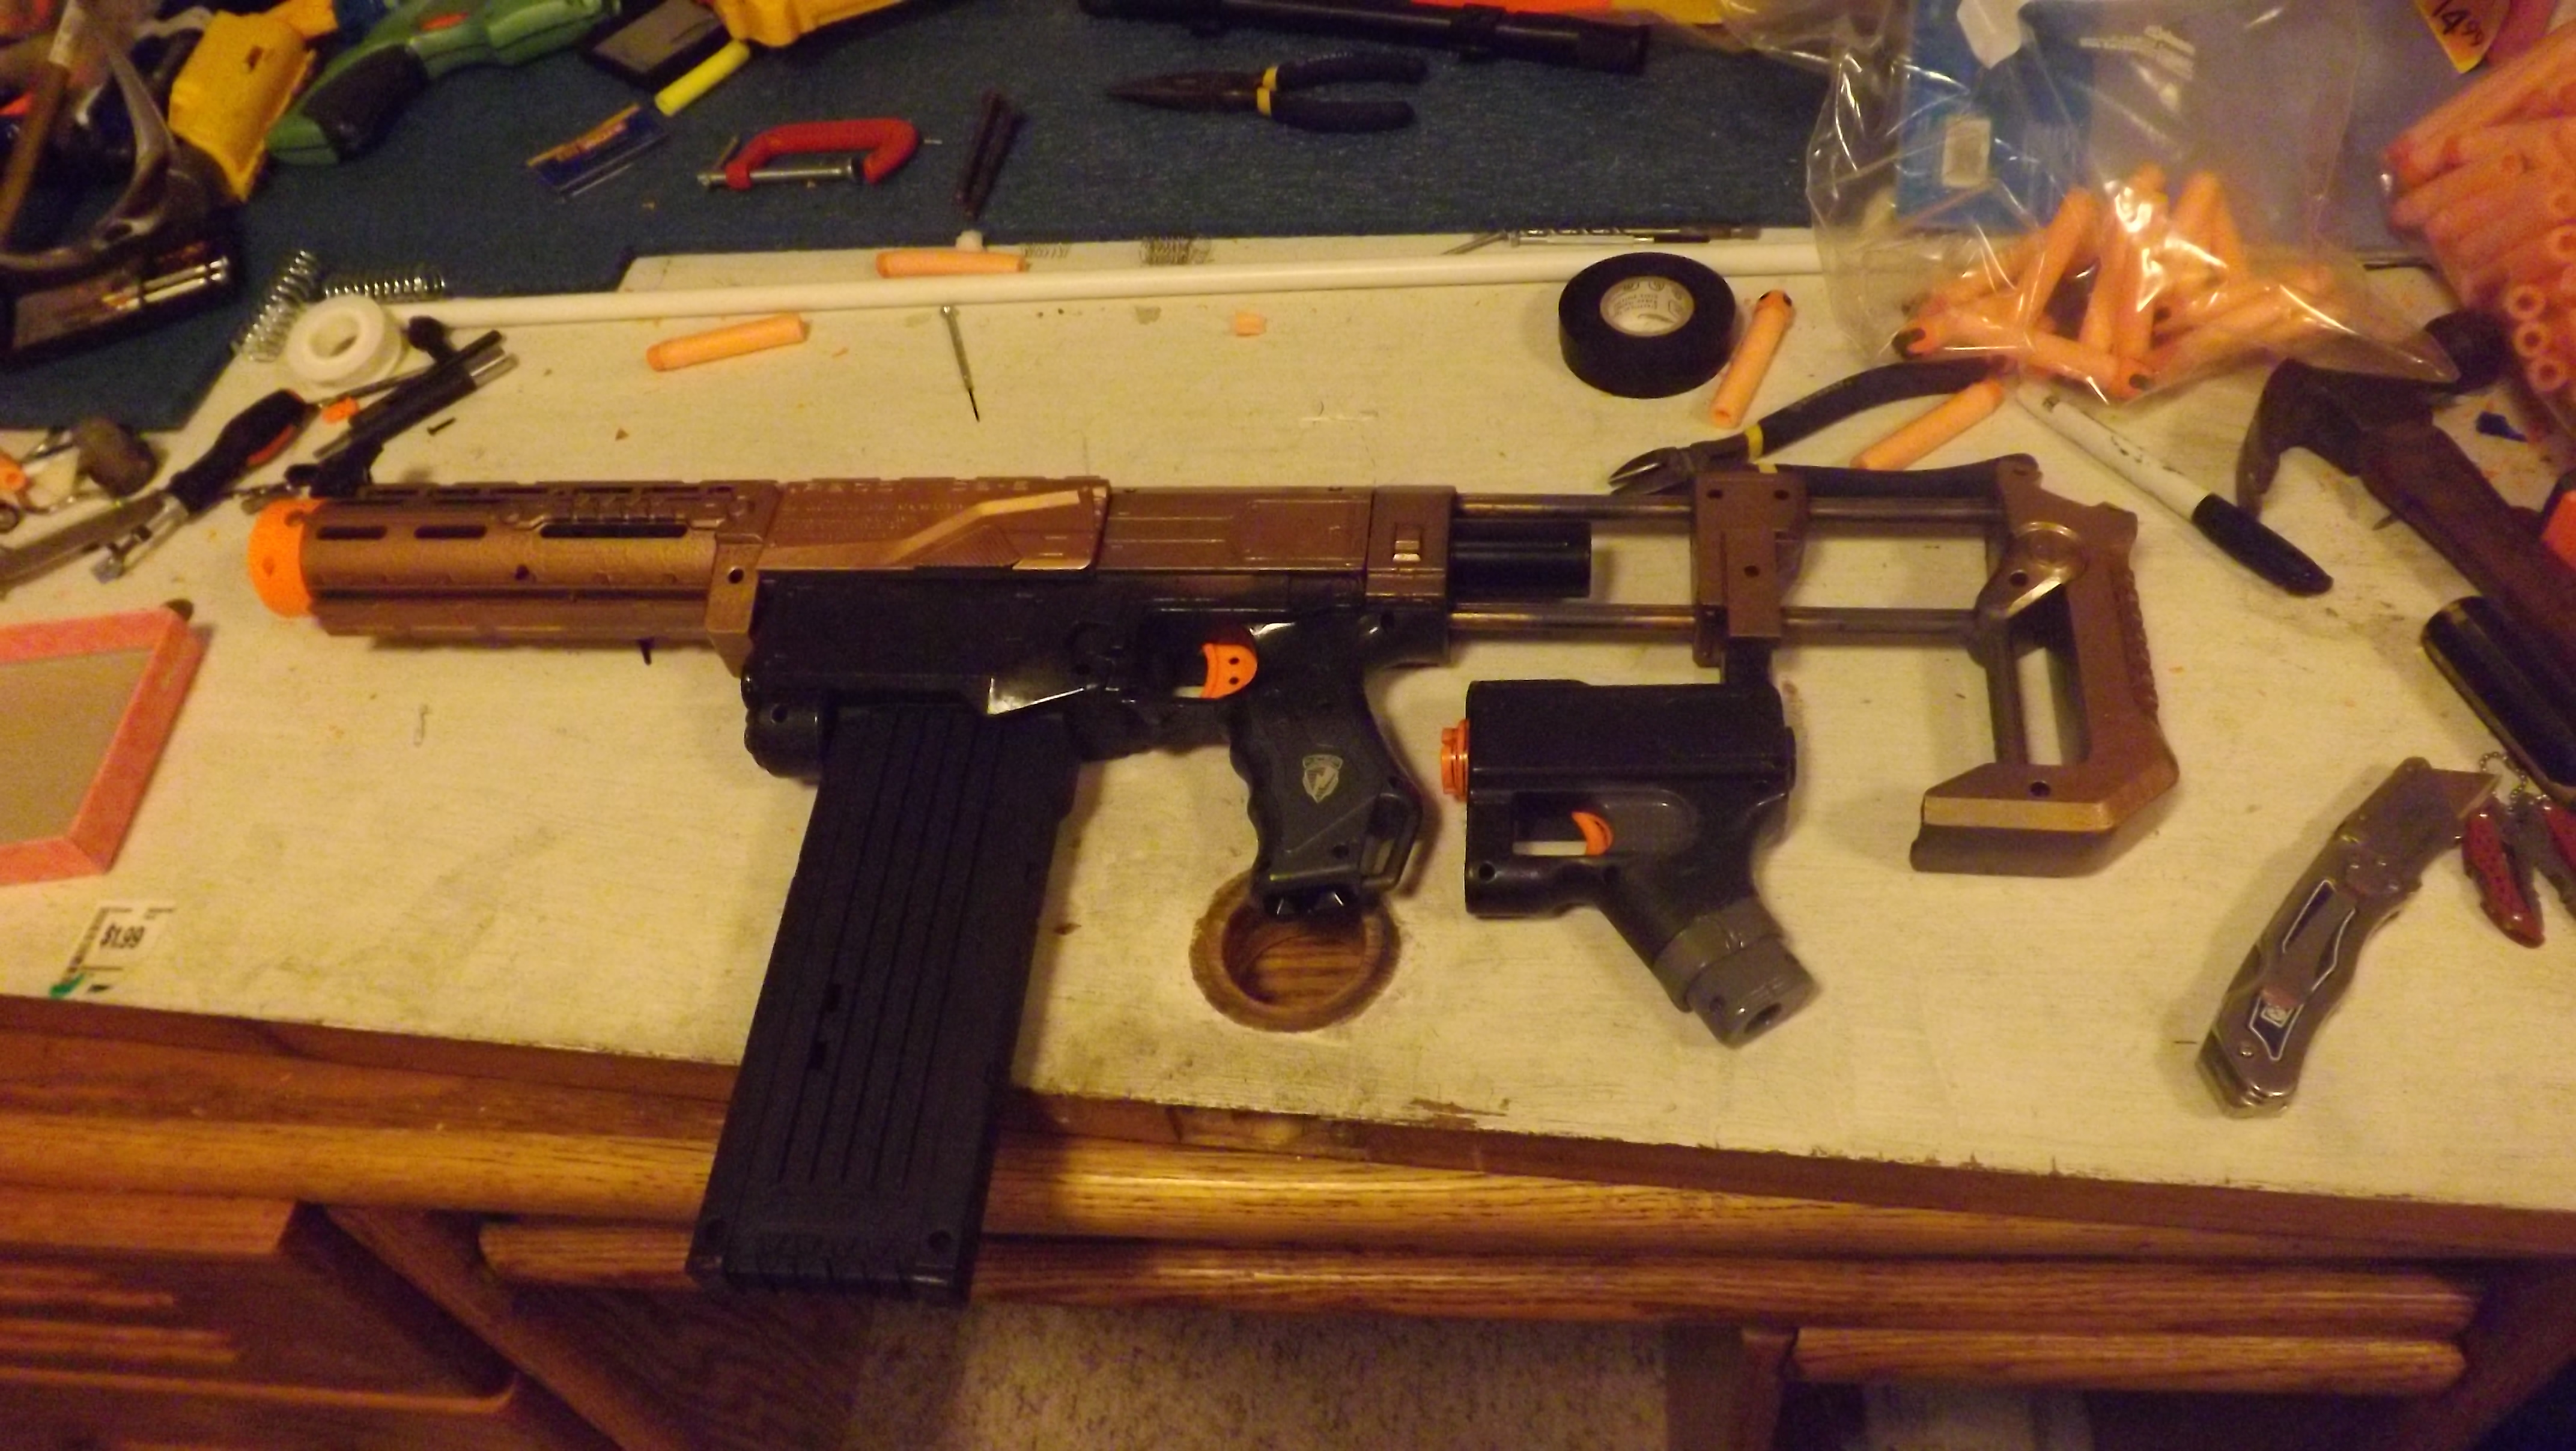 A modified nerf gun for our new hobby